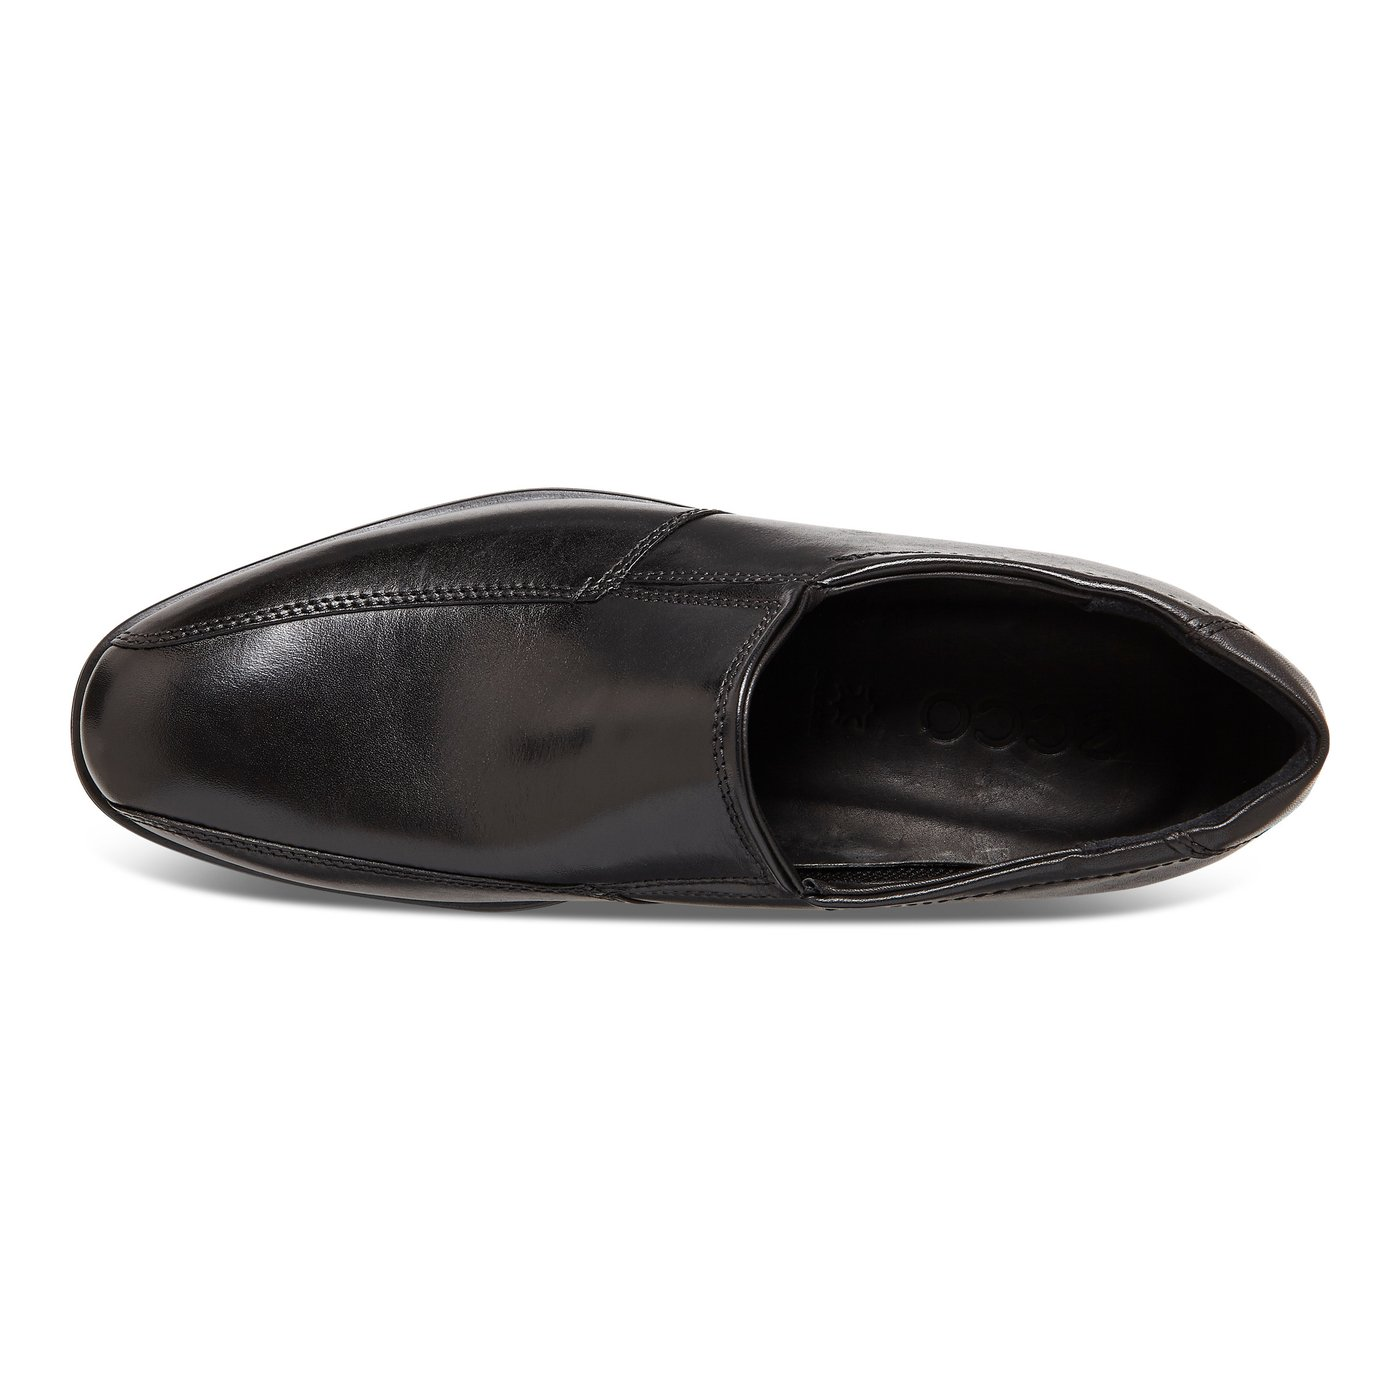 ECCO MELBOURNE Bike Toe Slip On